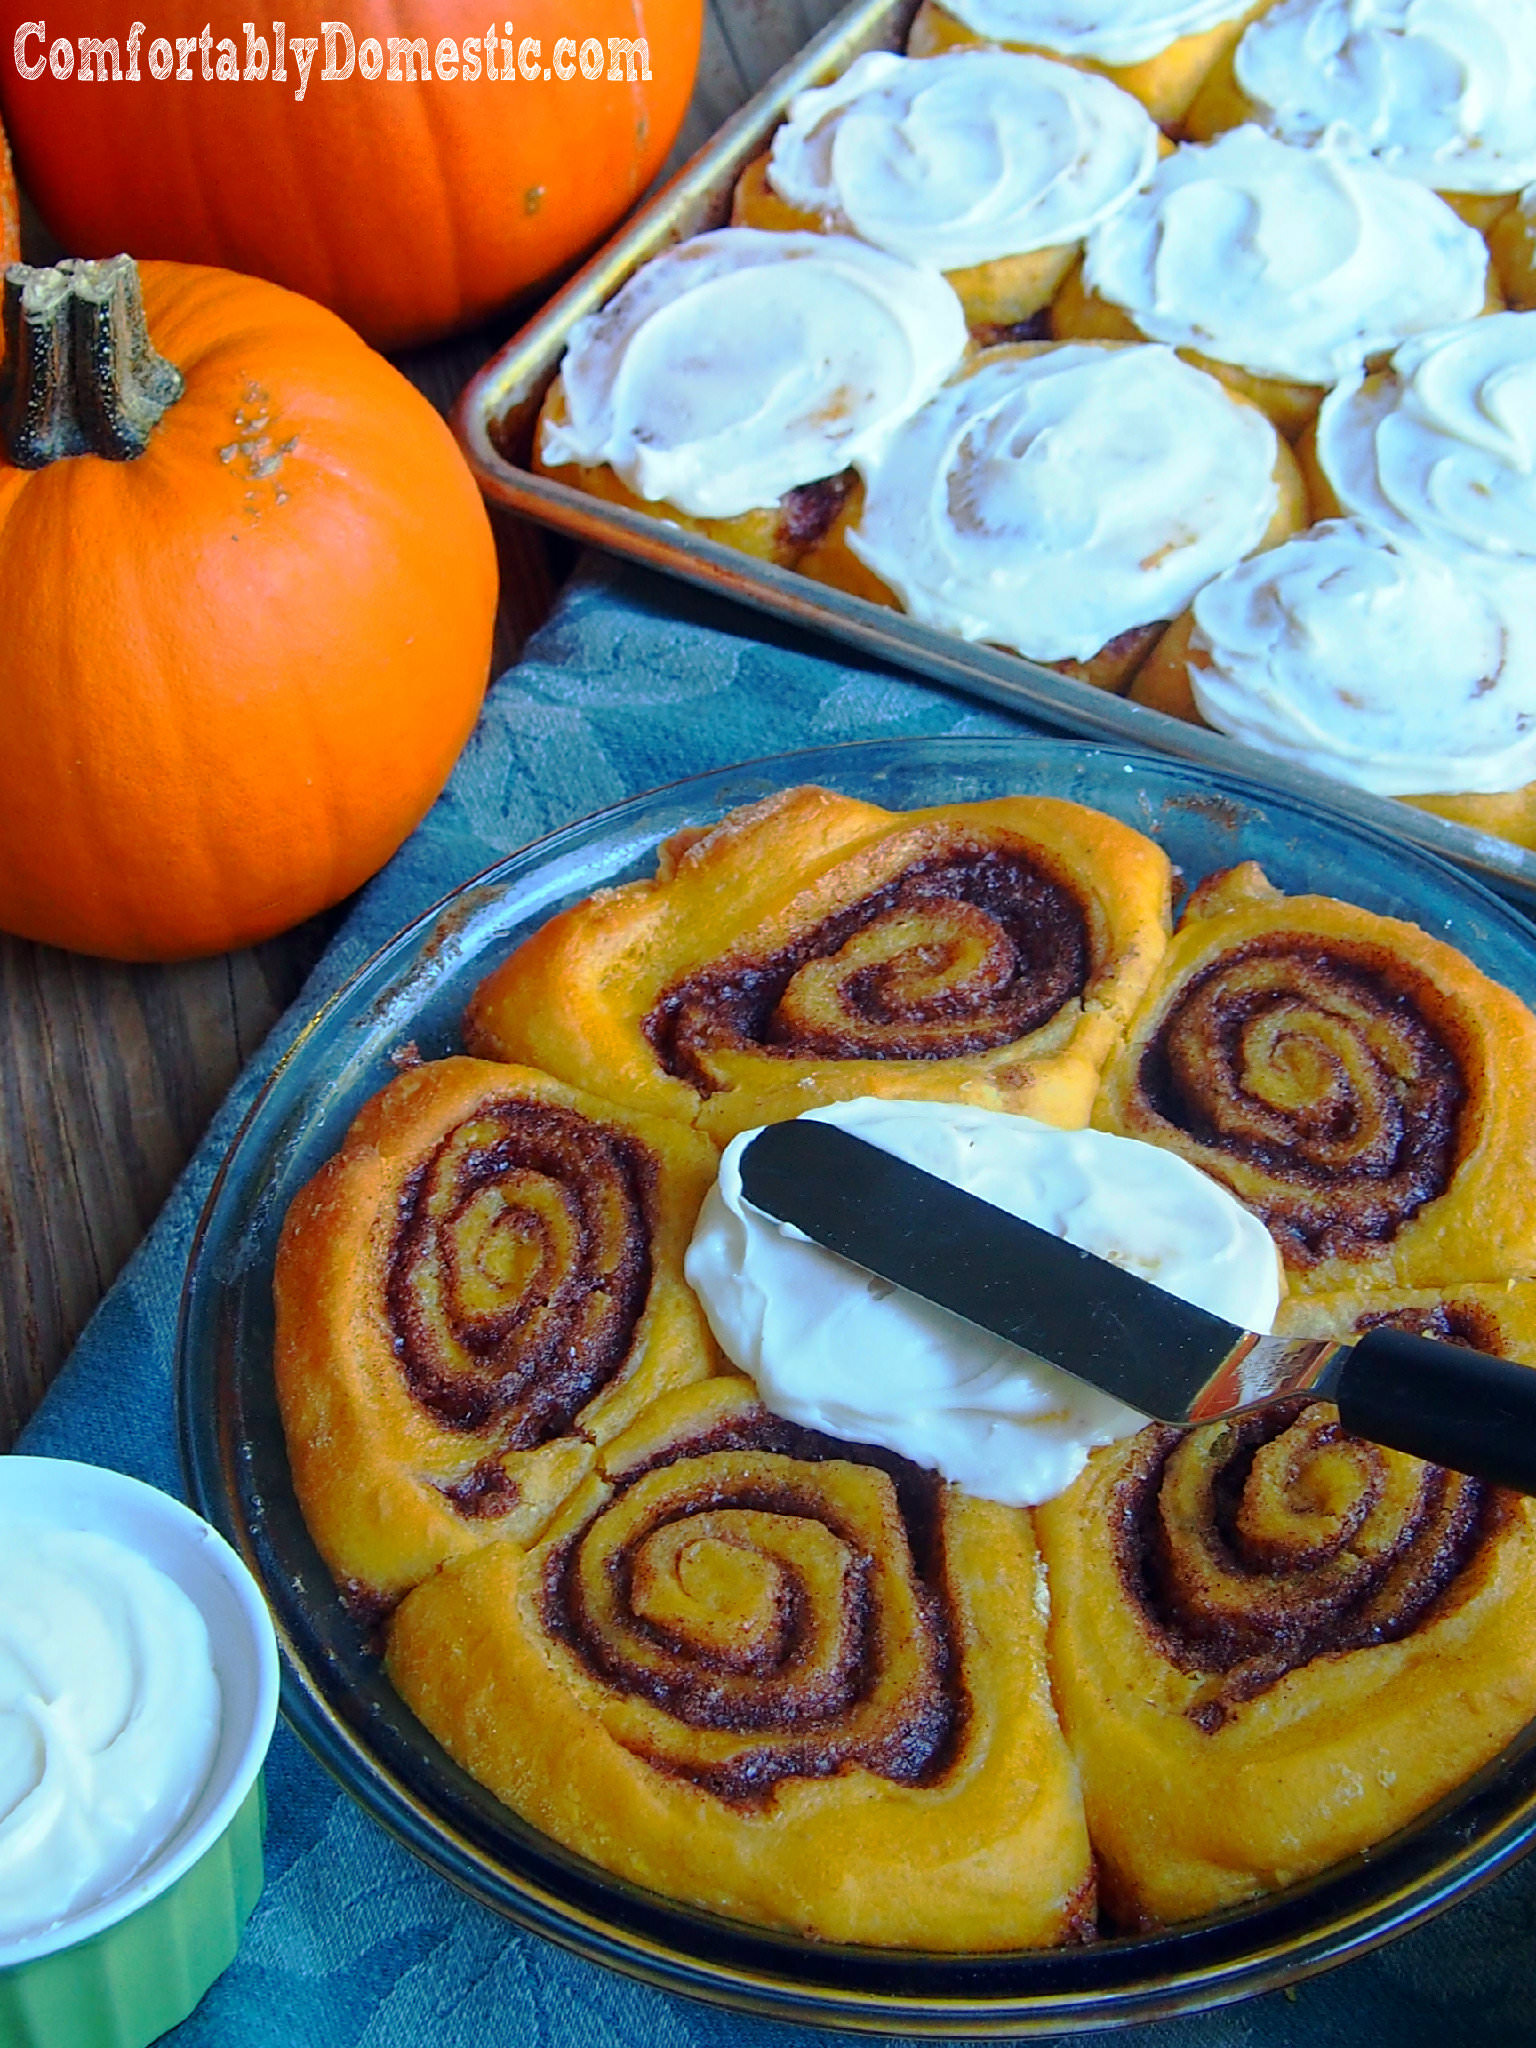 Pumpkin Cinnamon Rolls with Cream Cheese Icing | ComfortablyDomestic.com